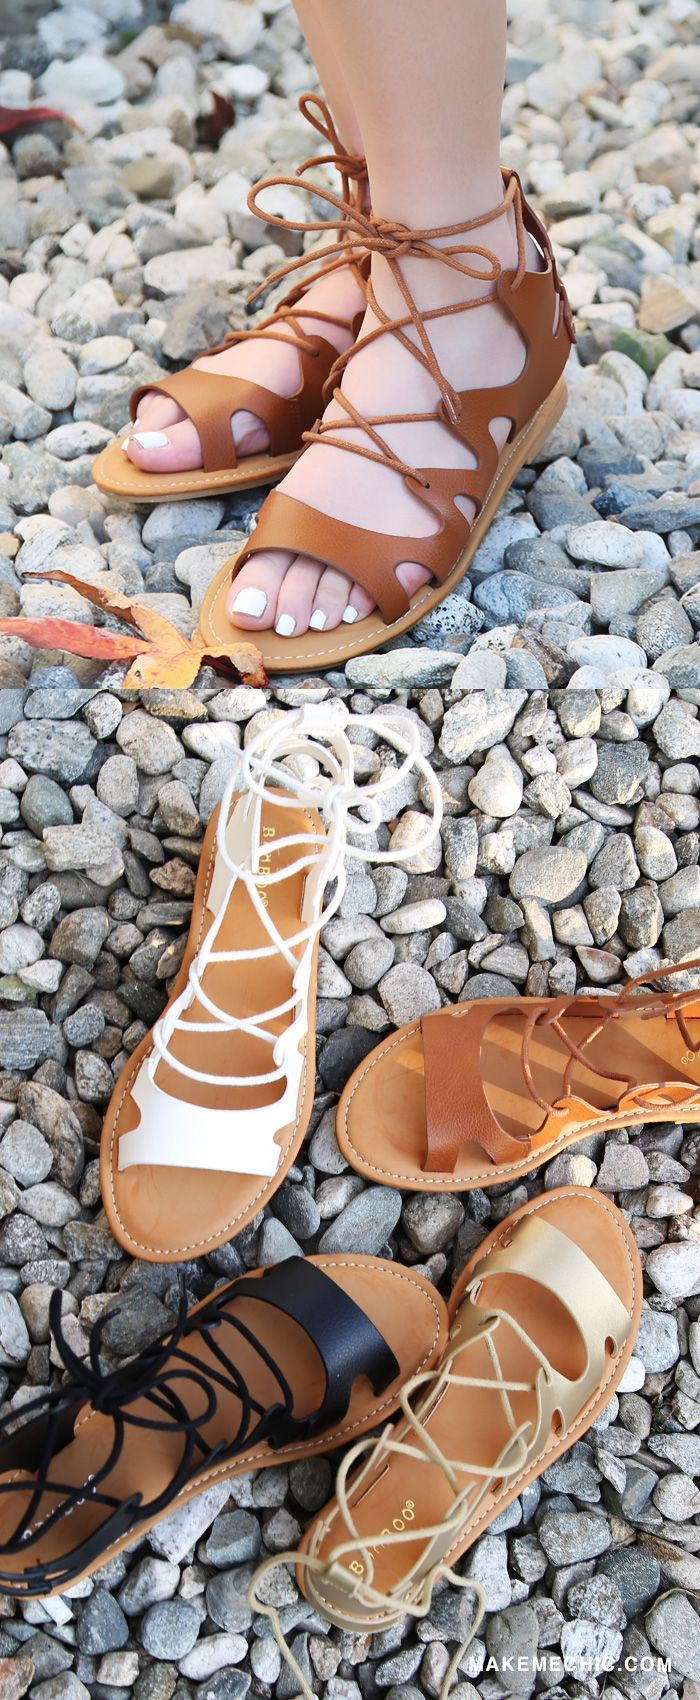 "Step into bliss with the Open Toe Gladiator Lace Up Sandals! These on trend sandals feature an open toe, lace up front design, and PU upper. Finished off with a .25"" flat heel and slightly cushioned insole for added comfort. Pair with high waisted shorts and a faux suede fringe vest for a chilled out bohemian vibe!"